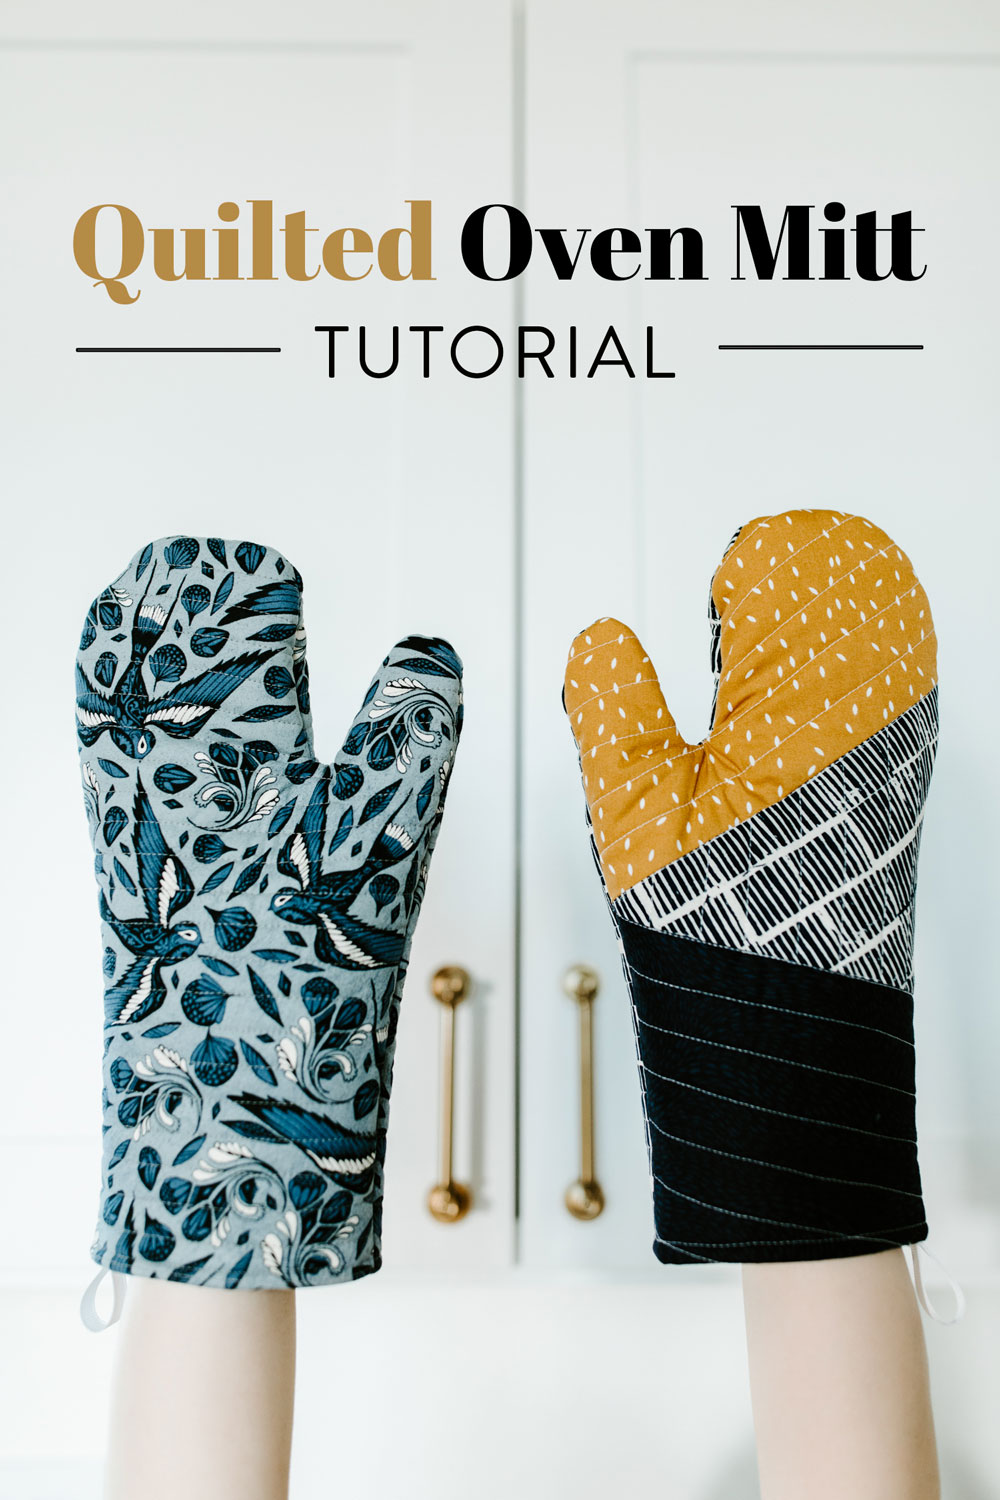 This quilted oven mitt tutorial shows step-by-step instructions to sew a modern patchwork oven mitt – such a beautiful DIY gift! suzyquilts.com #ovenmitt #DIYsewing